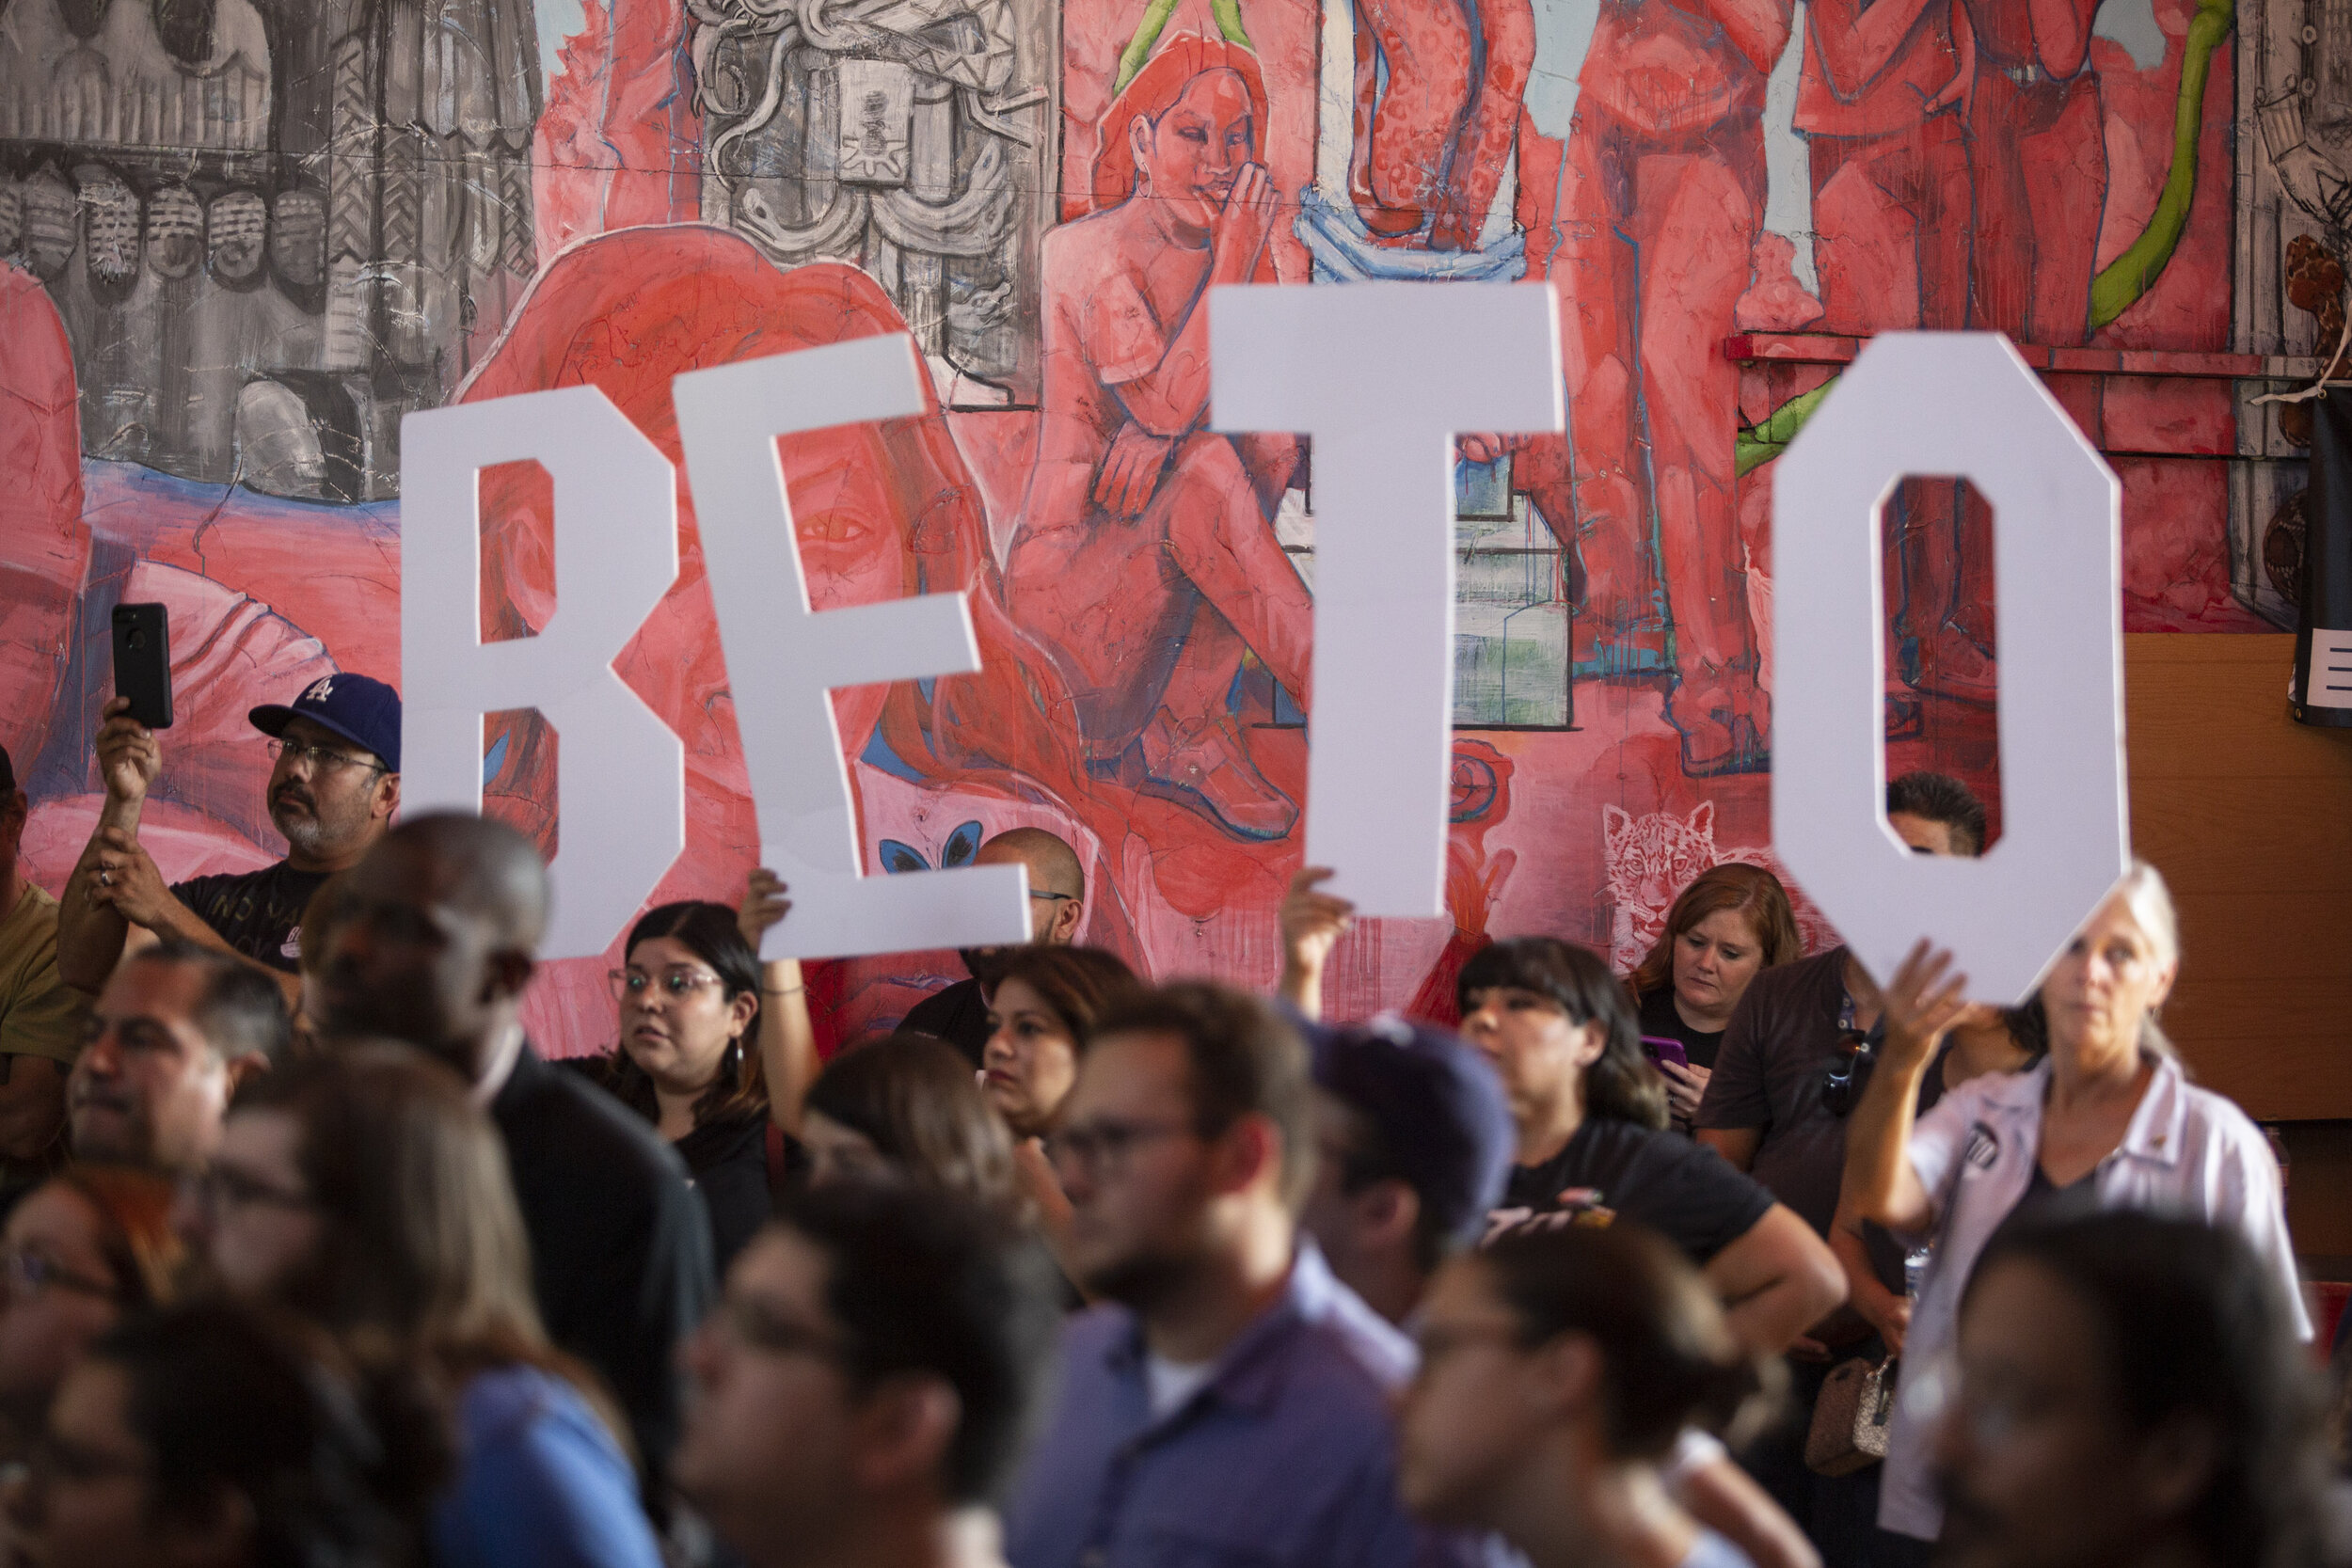 Beto O'Rourke's supporters, holding signs, during a town hall event at Casa del Mexicano, on Saturday, October 5, in Los Angeles, Calif.  (Yasamin Jtehrani / The Corsair)